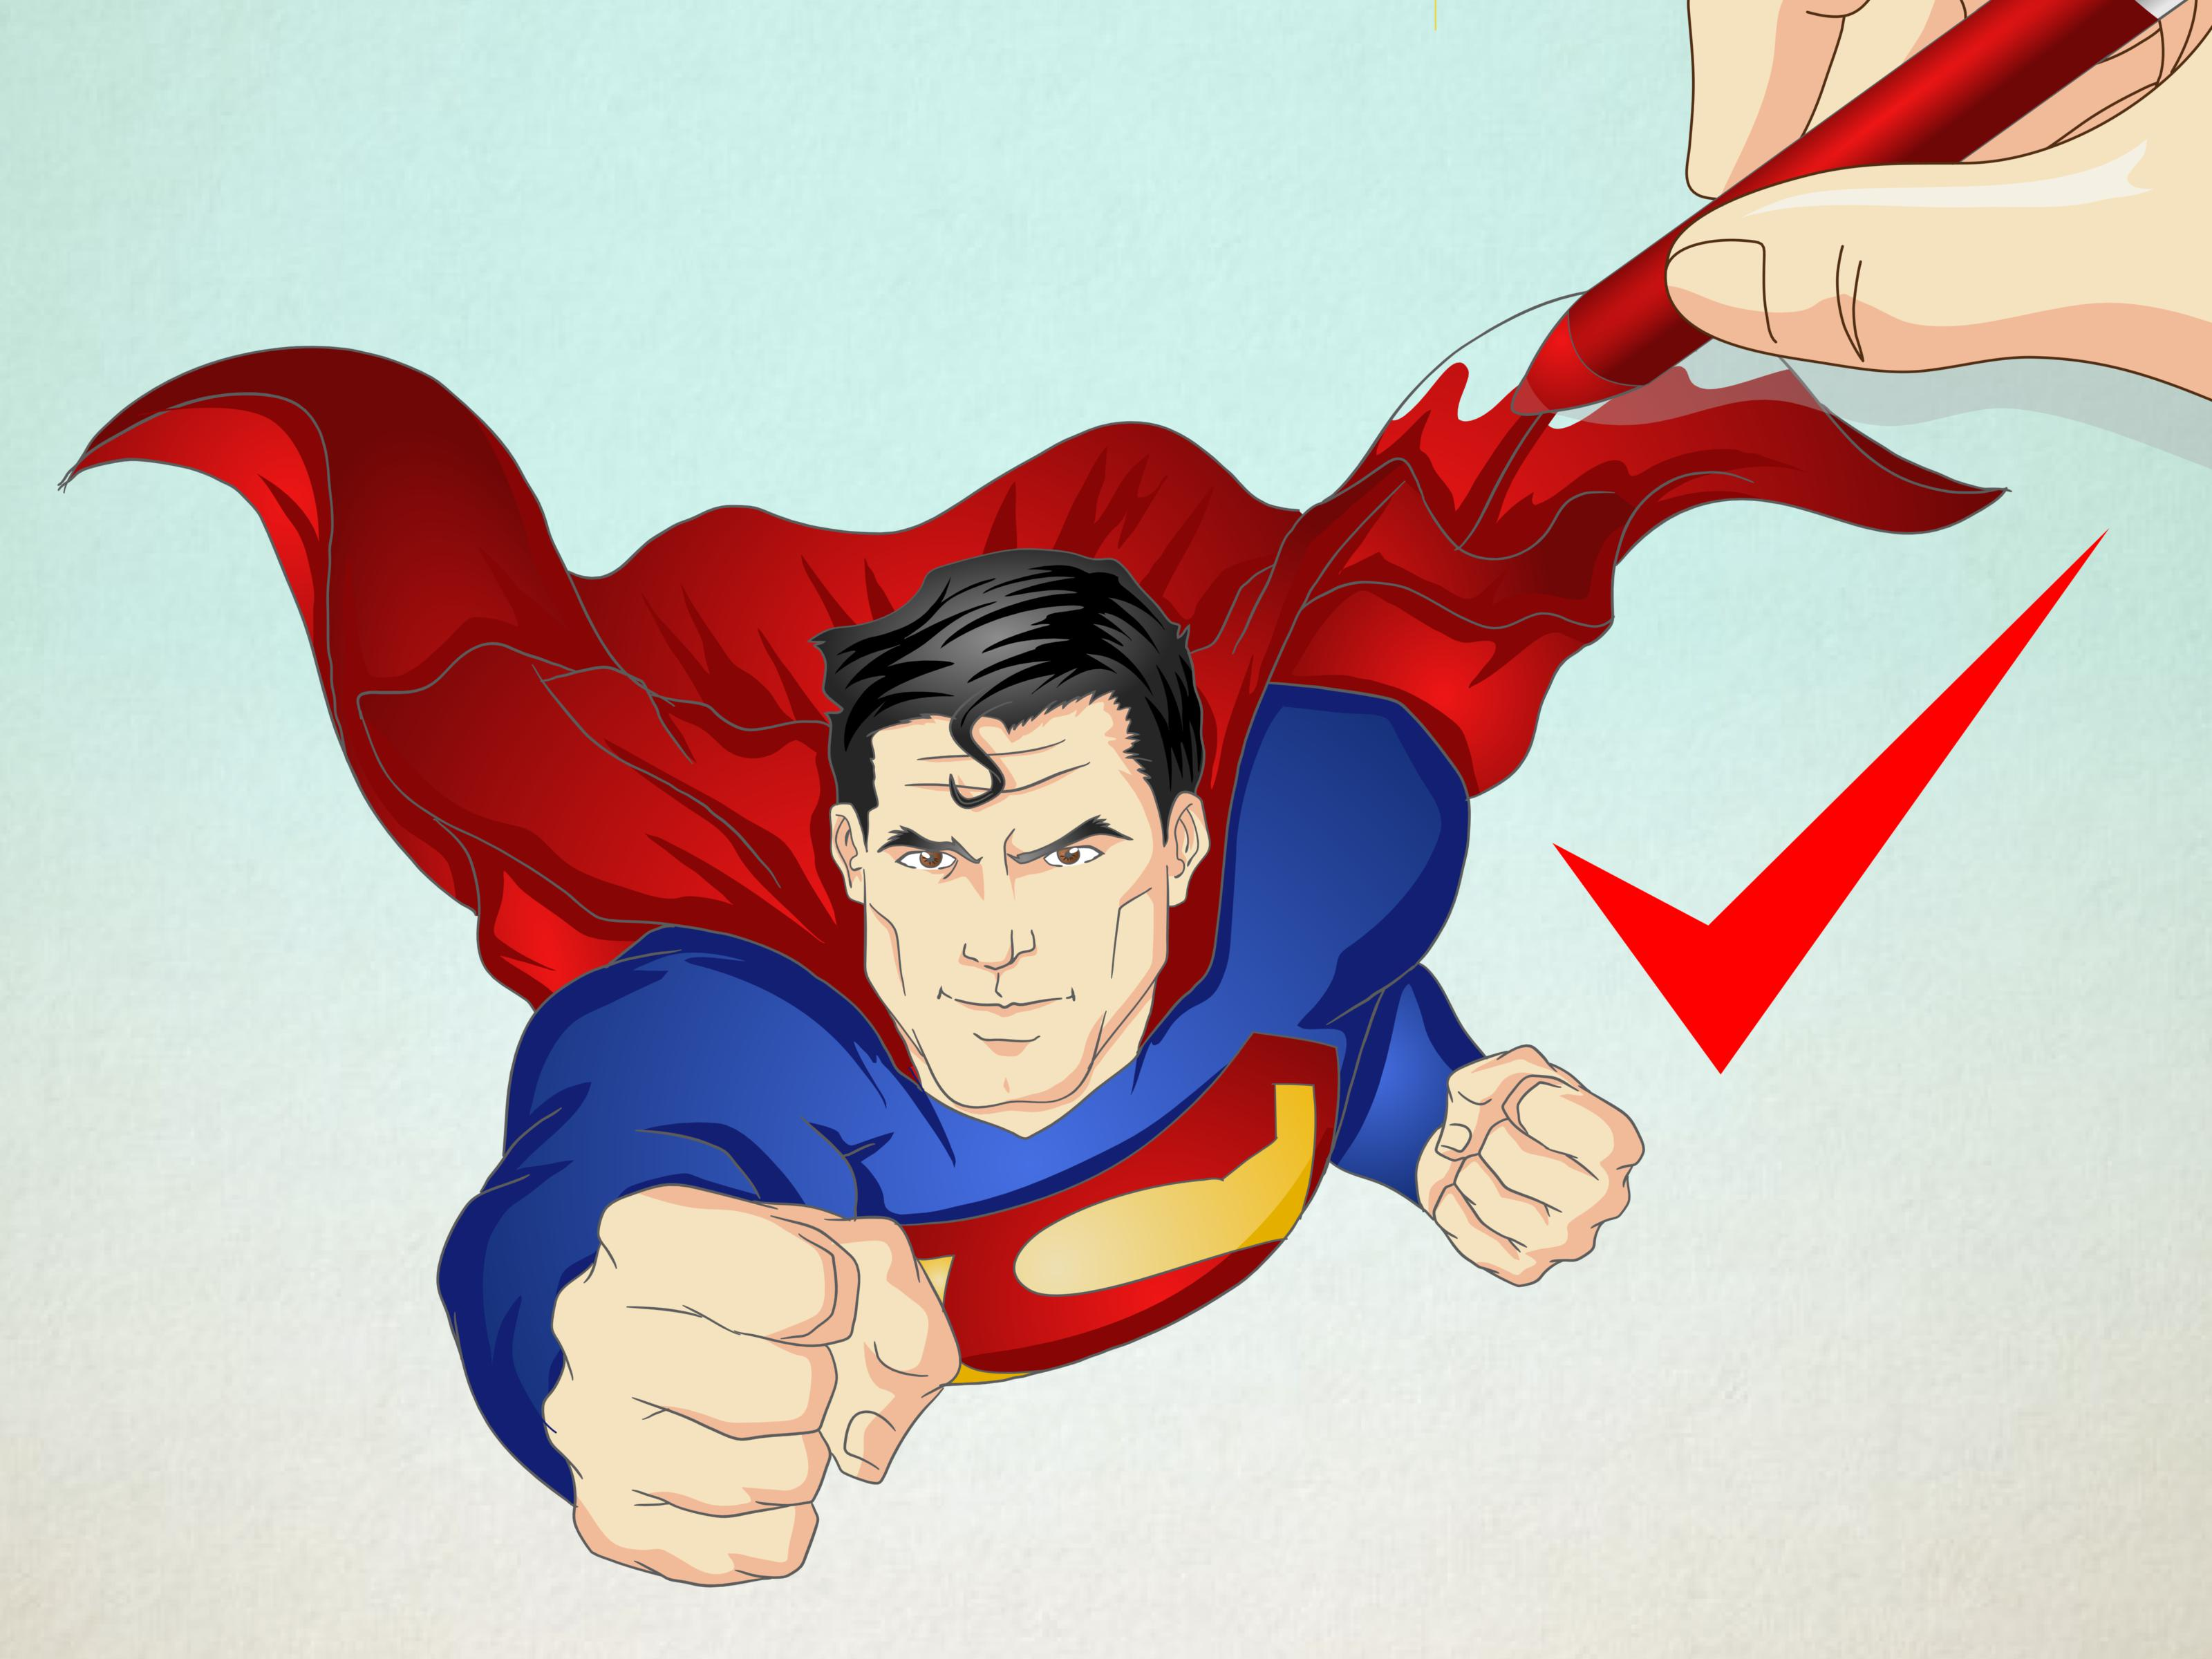 Drawn superman cartoon character To 13 (with  Pictures)